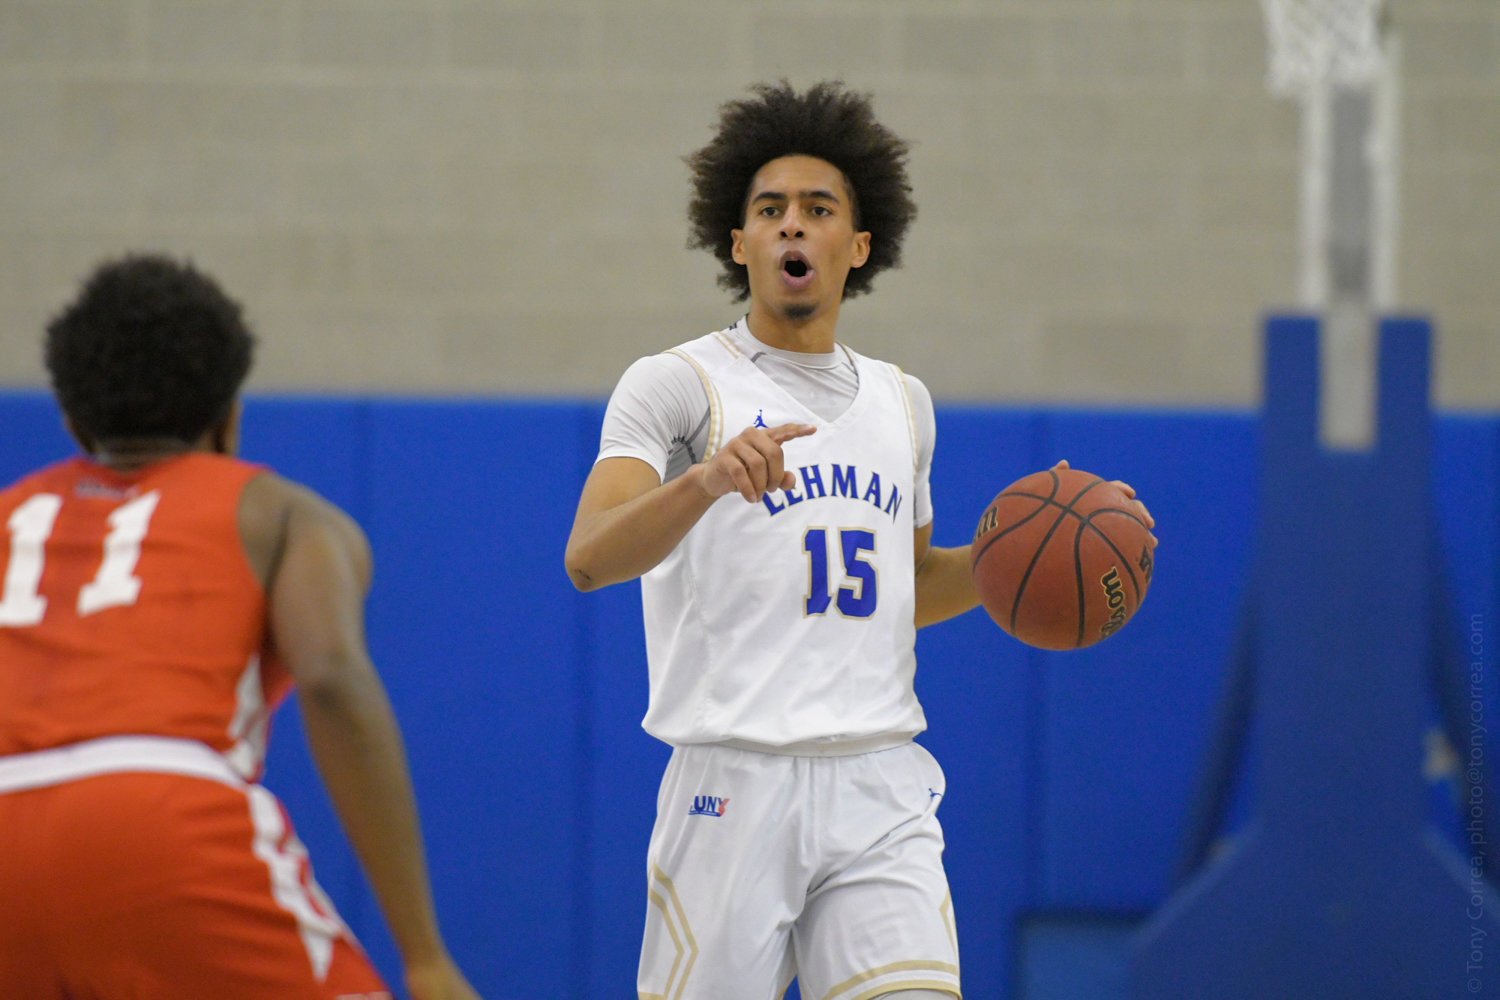 Lehman junior guard Gian Batista scored a team-best 23 points versus Baruch, but it wasn't enough to save the Lightning from a 70-57 season-ending loss to the Bearcats in the CUNYAC semifinals.